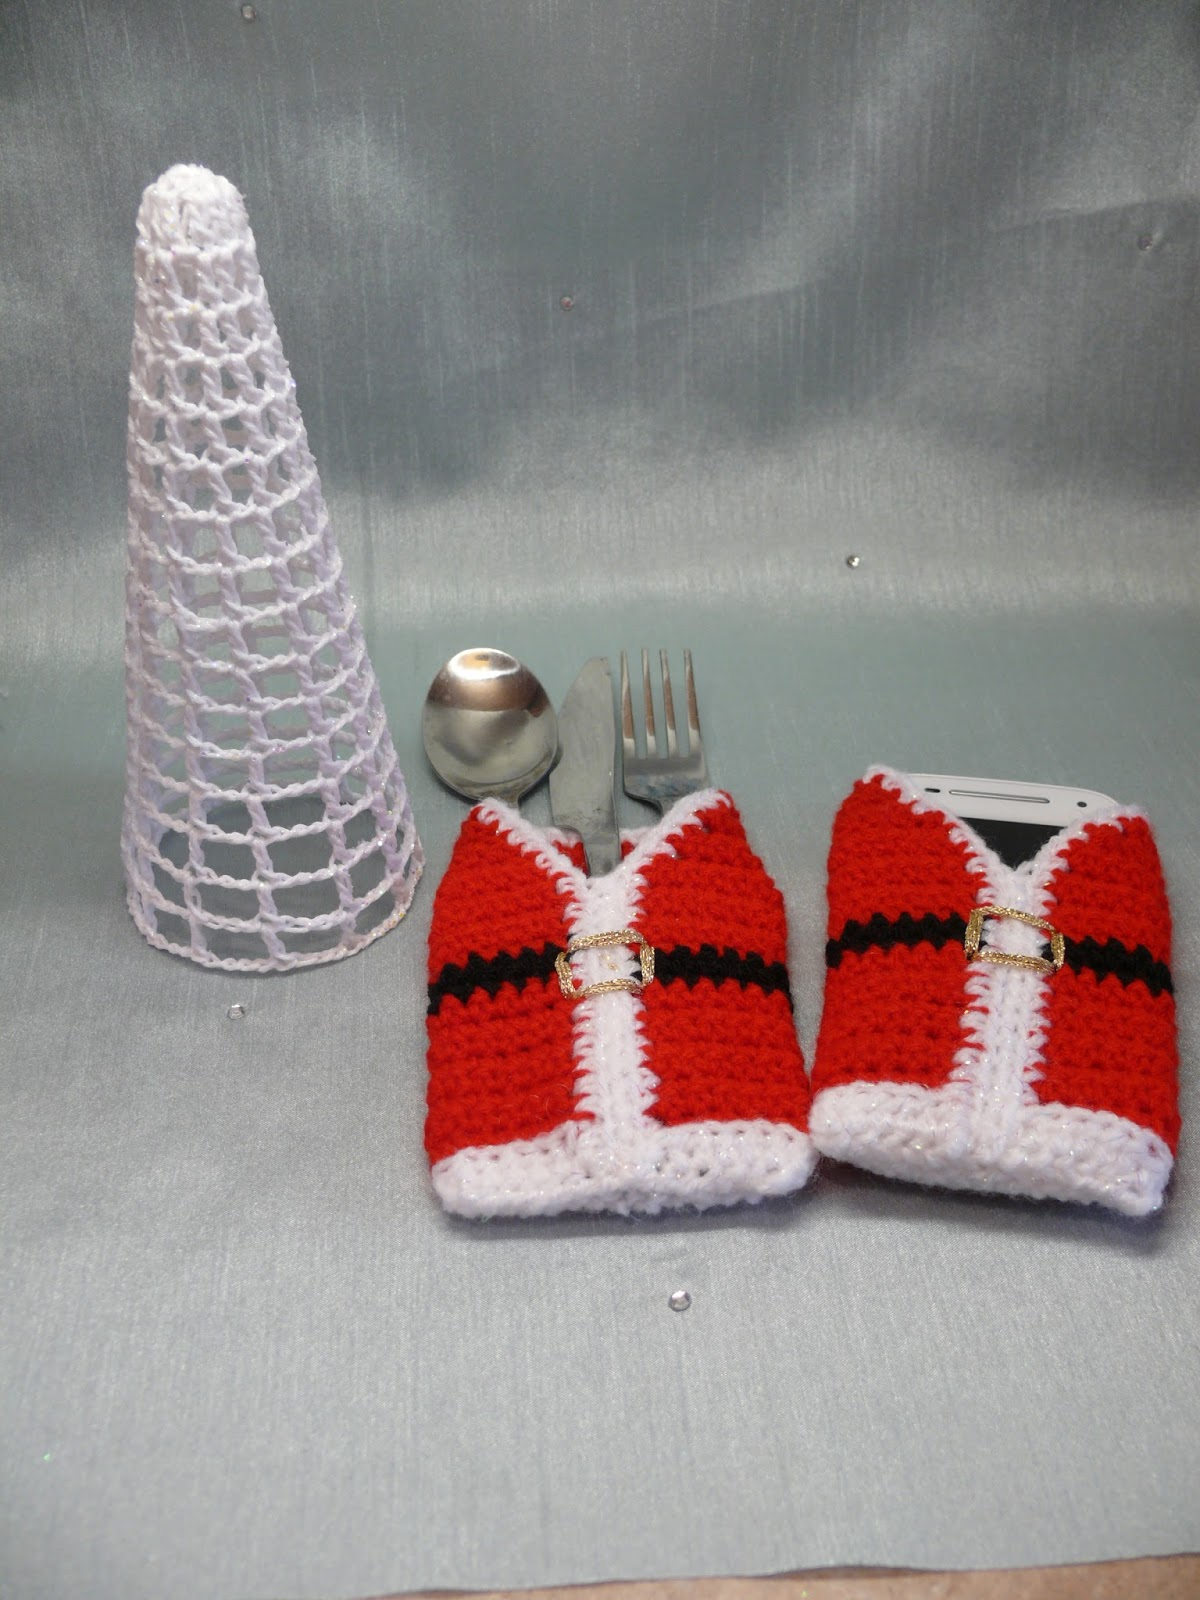 Knitting Pattern For Christmas Cutlery Holder : String Theory Crochet: Free Crochet Pattern For Santas Vest Cutlery Holder or...